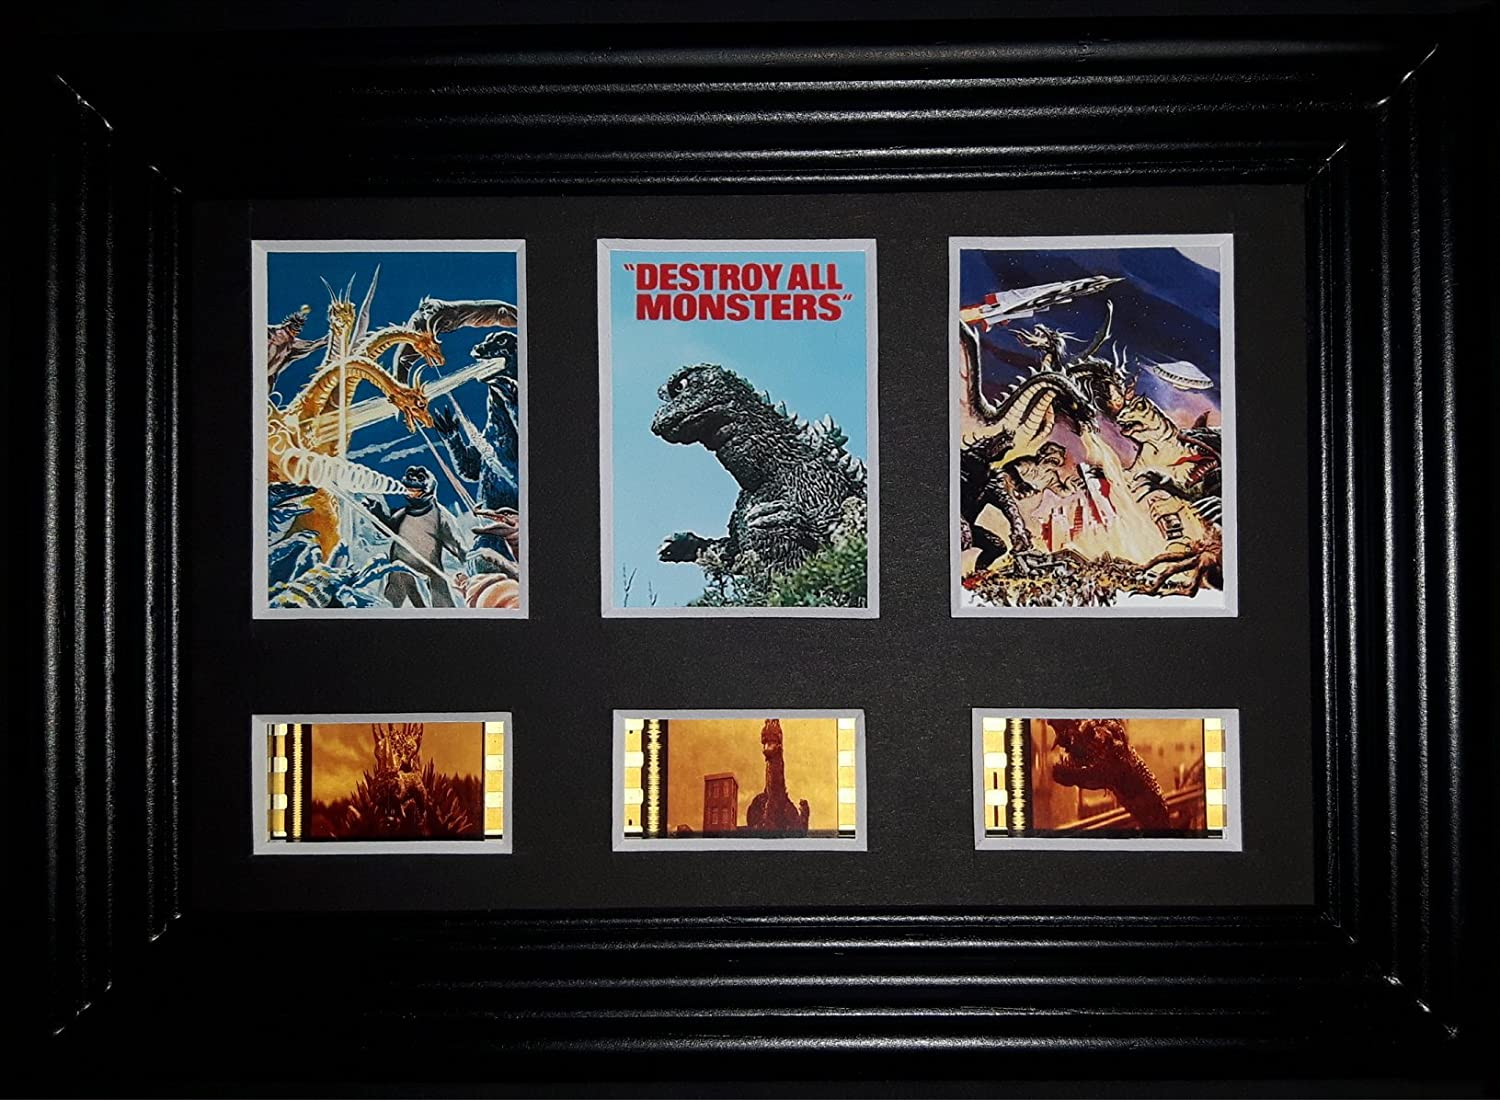 DESTROY ALL MONSTERS GODZILLA Framed Trio 3 Film Cell Display Movie Memorabilia